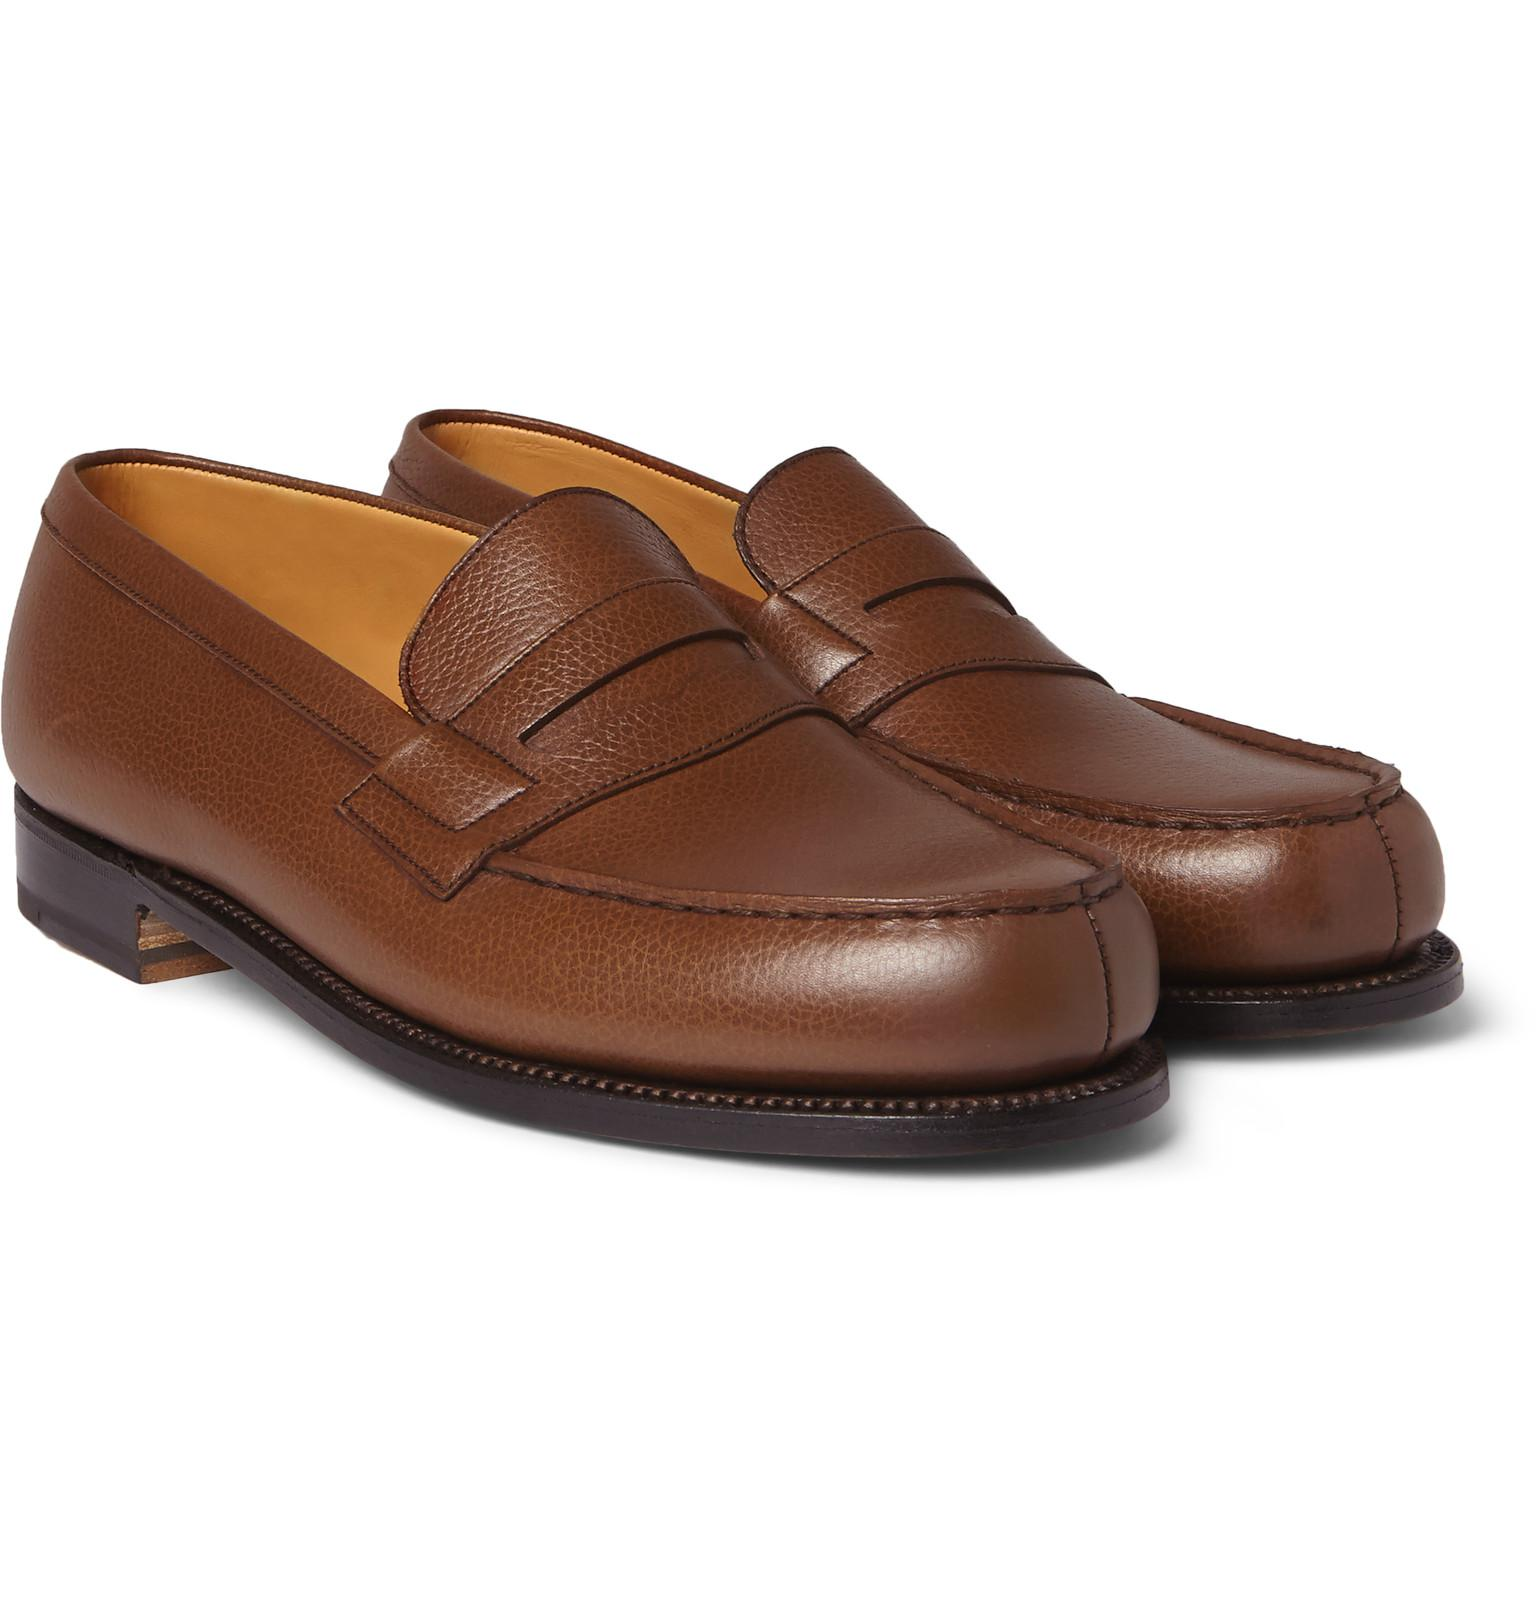 J.M. Weston 180 The Moccasin Burnished-Leather Penny Loafers cheap sale footlocker pictures 8J3OZJ